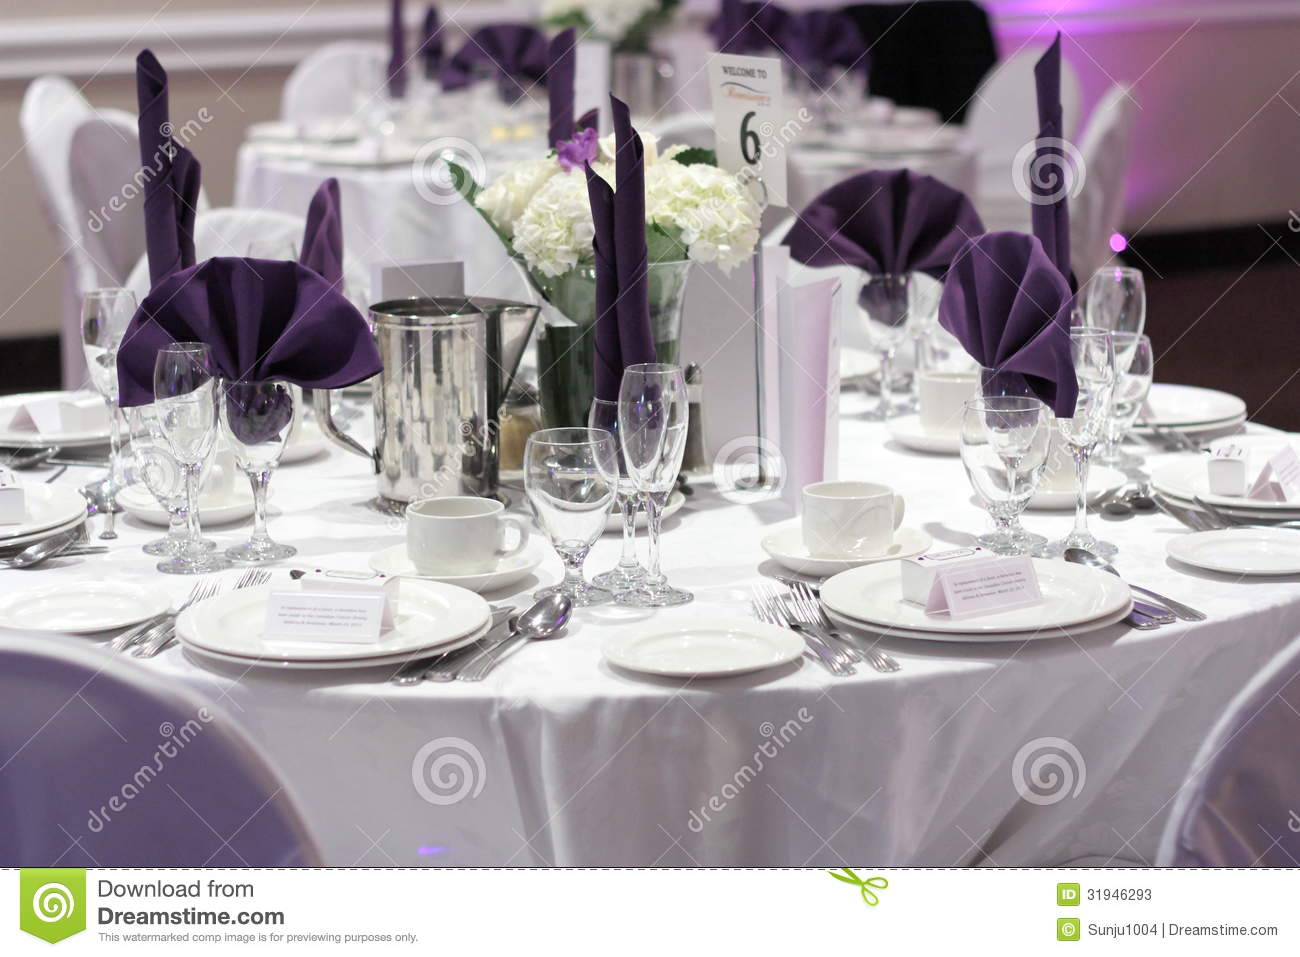 Reception stock photos image 31946293 for Simple table setting